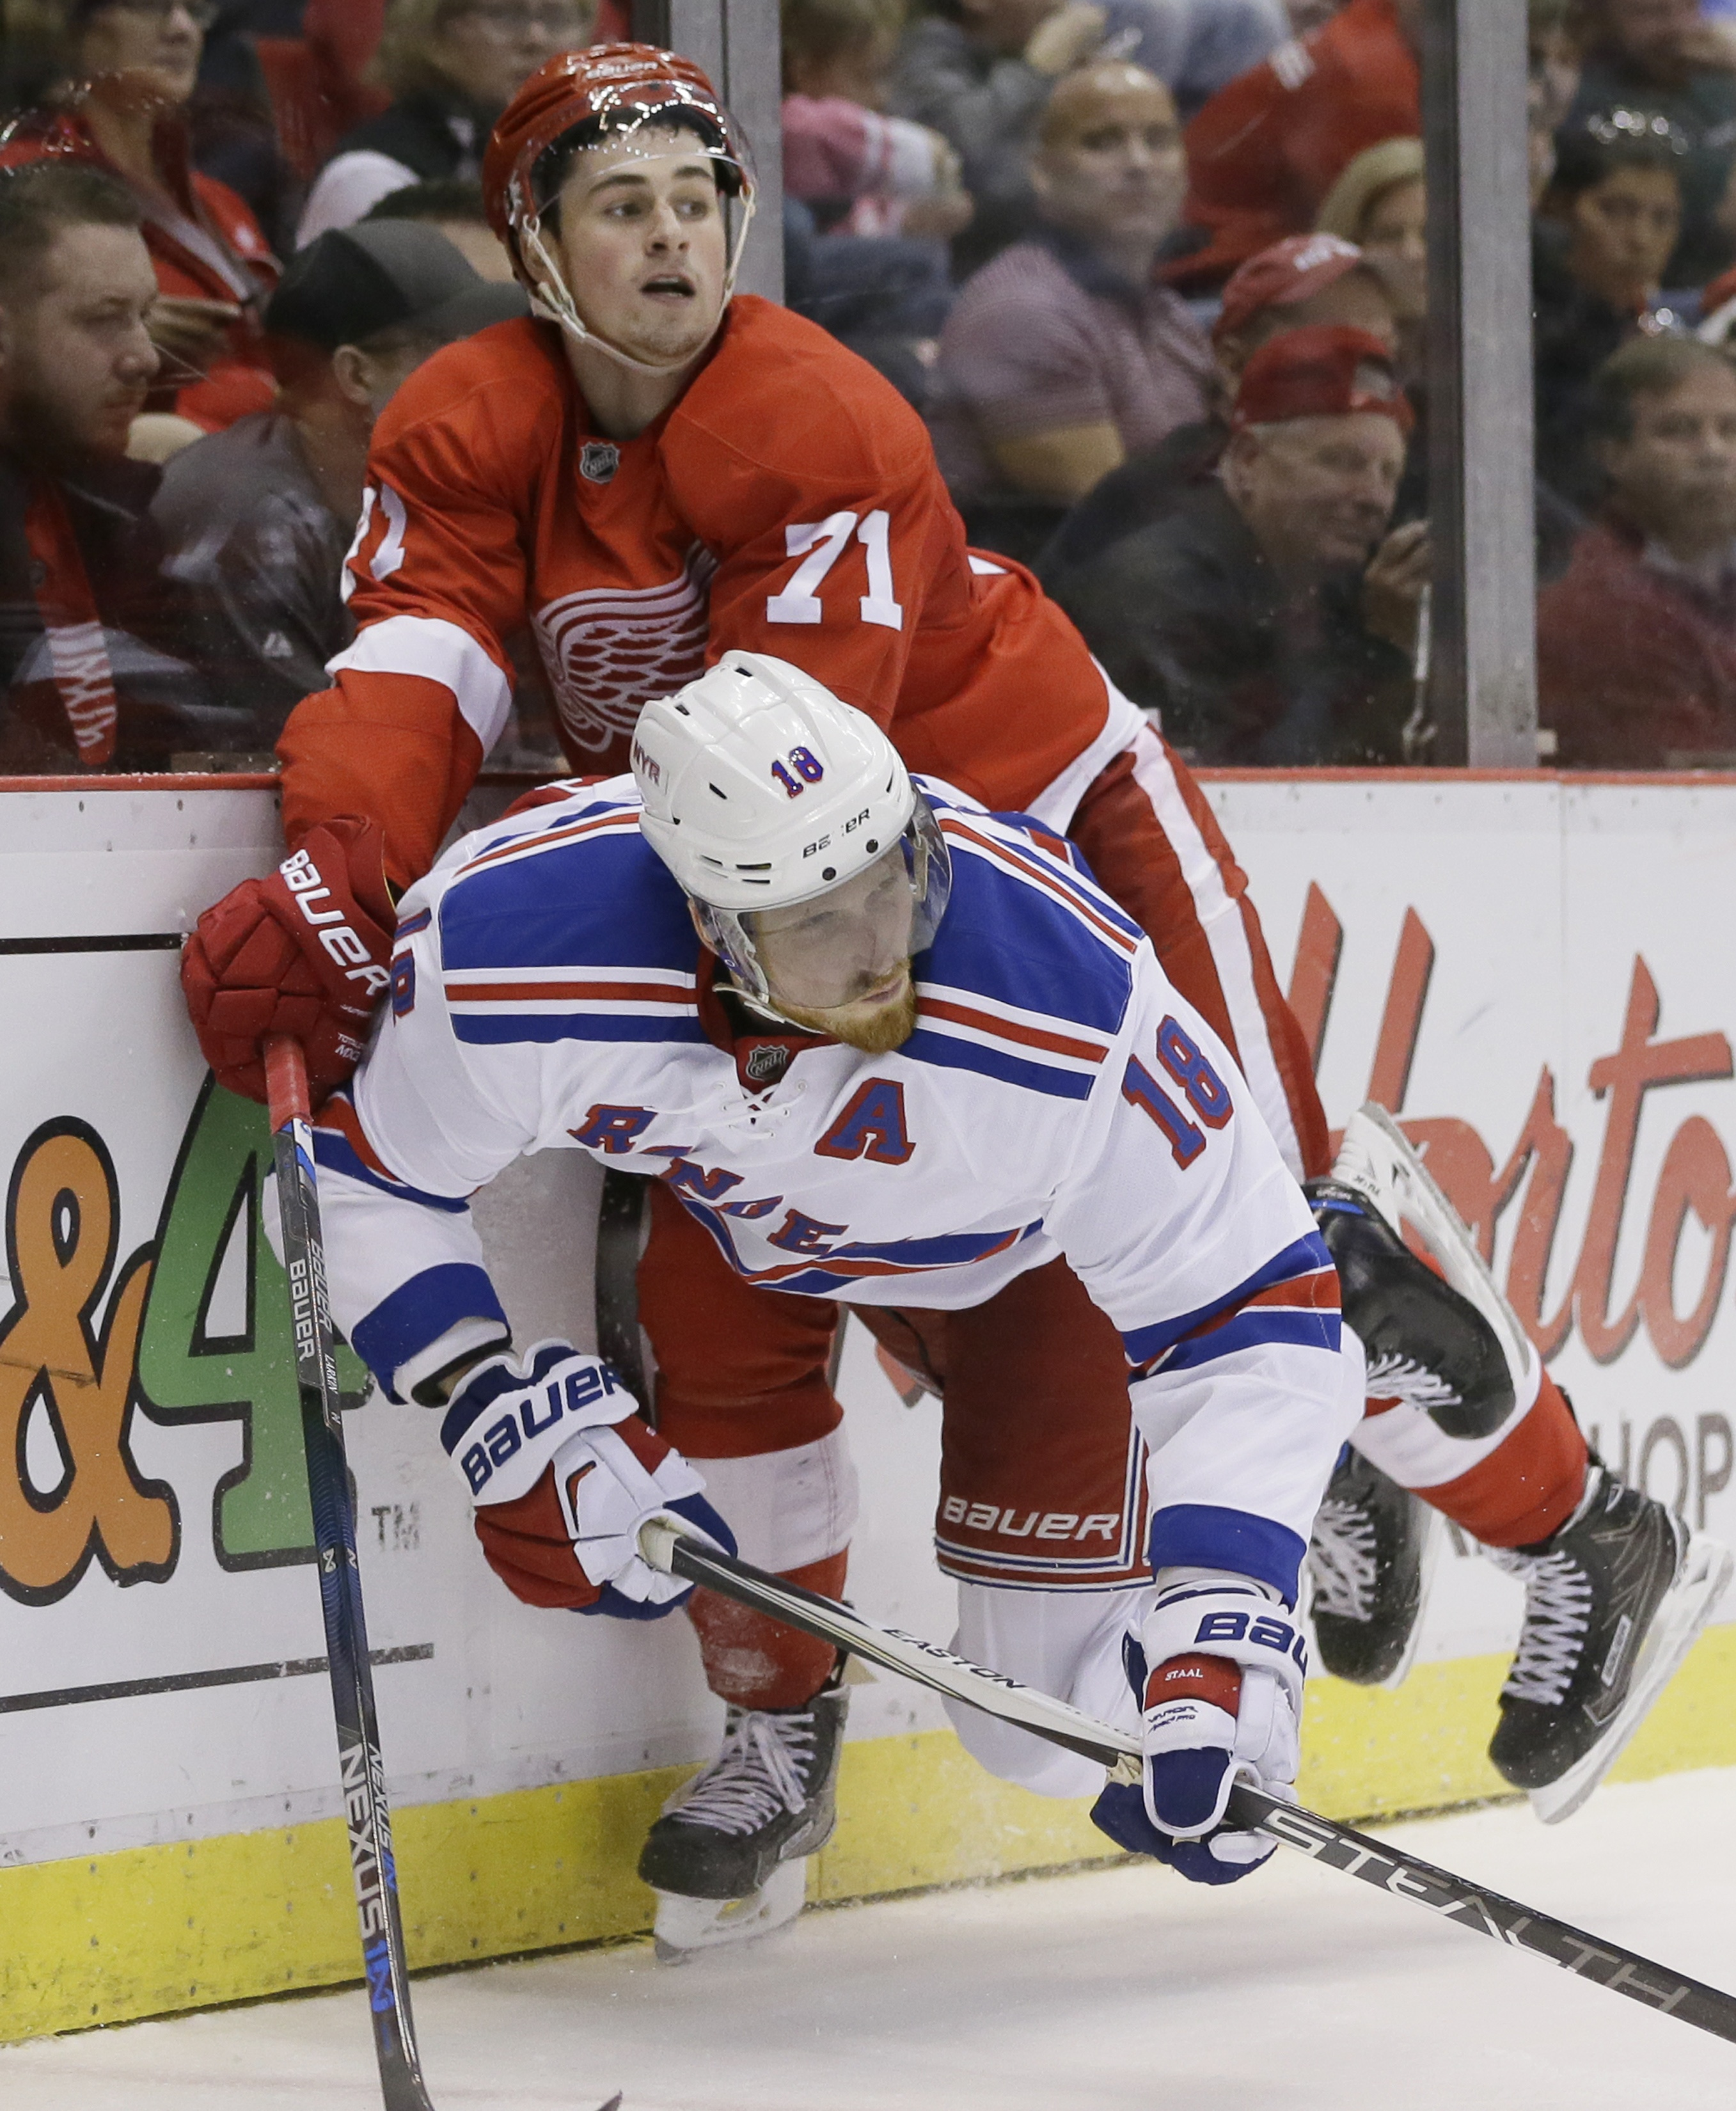 Detroit Red Wings center Dylan Larkin (71) checks New York Rangers defenseman Marc Staal (18) during the second period of an NHL hockey game, Saturday, March 12, 2016, in Detroit. (AP Photo/Carlos Osorio)